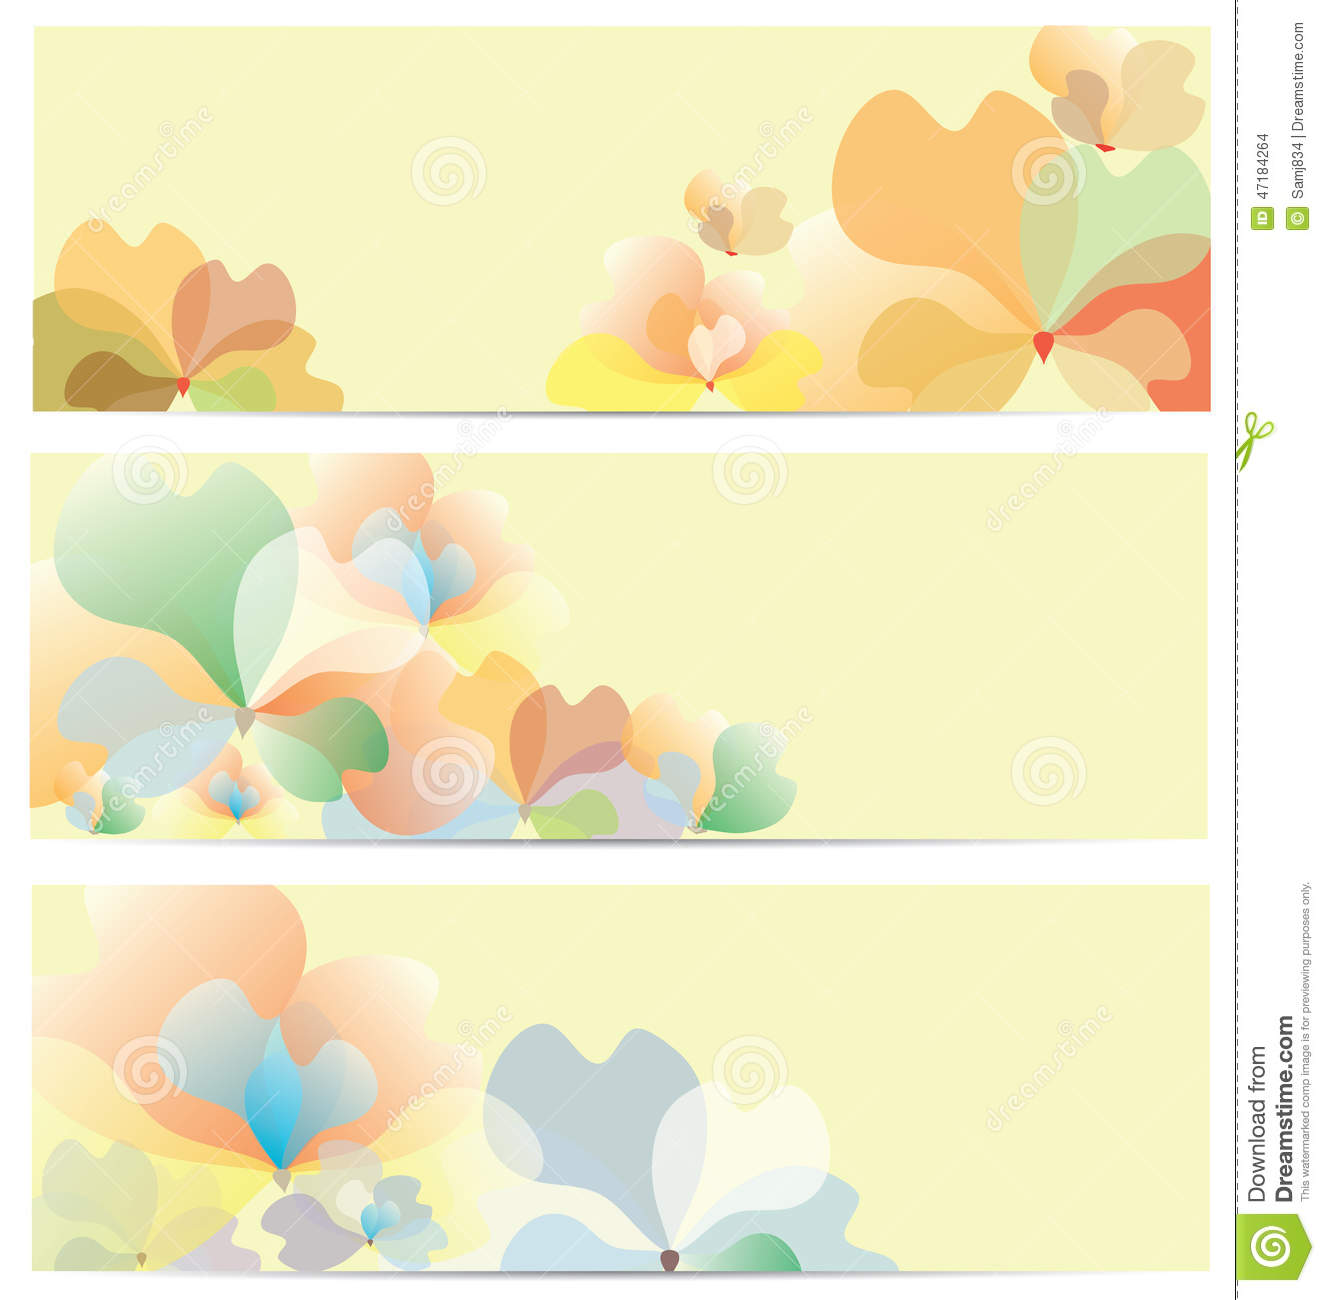 flower banner background set stock vector illustration of pattern illustration 47184264. Black Bedroom Furniture Sets. Home Design Ideas